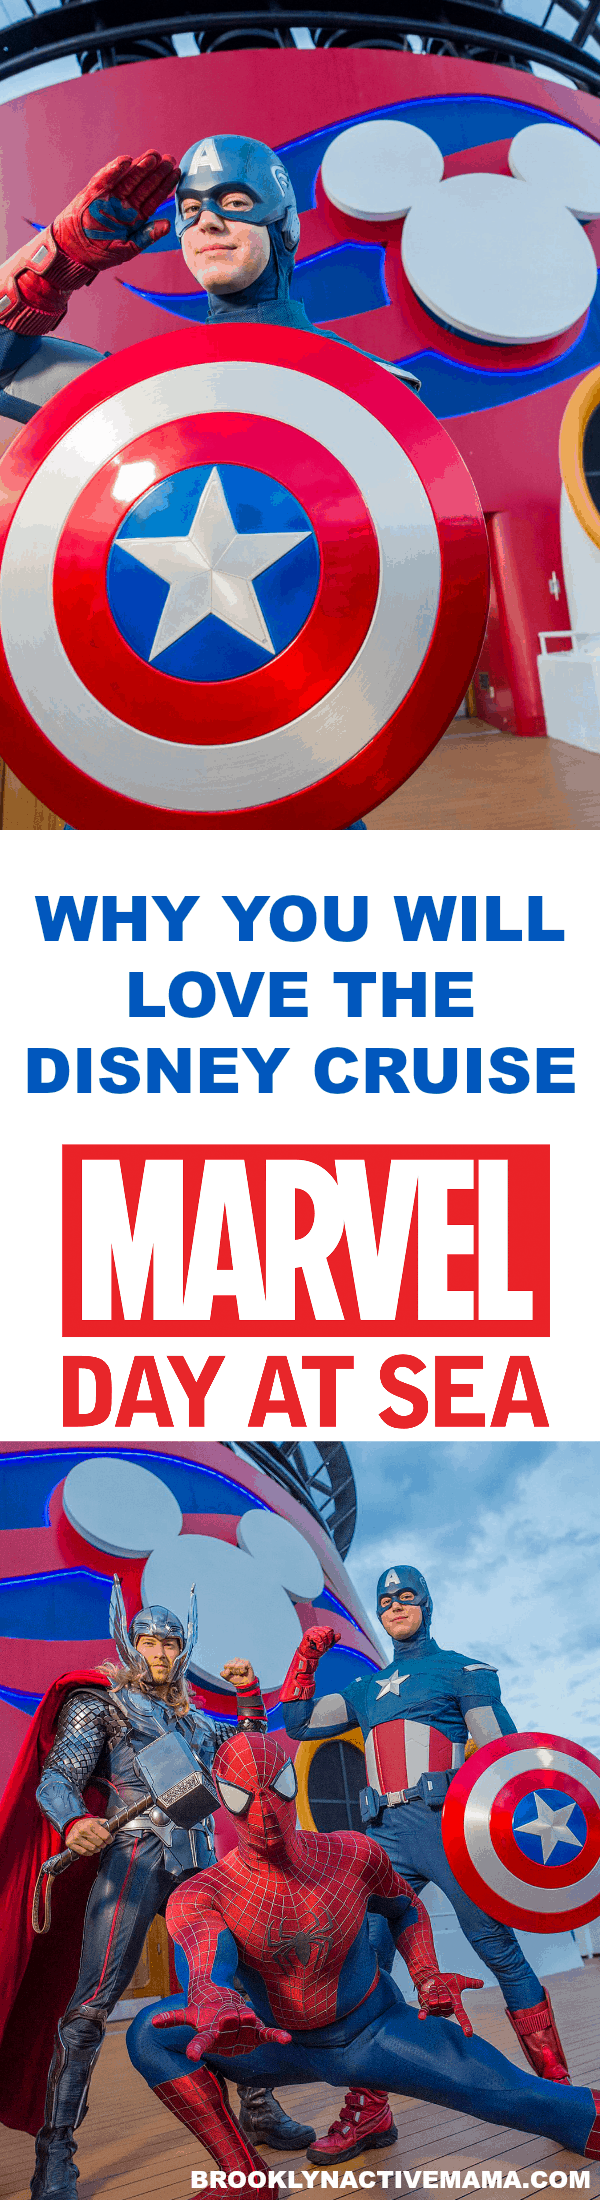 The Disney Cruise Marvel Day At Sea is setting sail this October and on select Disney Cruise Boats in 2018! If you have a Marvel fan in your household check out why this may be the best vacation cruise for you! Iron Man, Captain America, Thor, you name it!